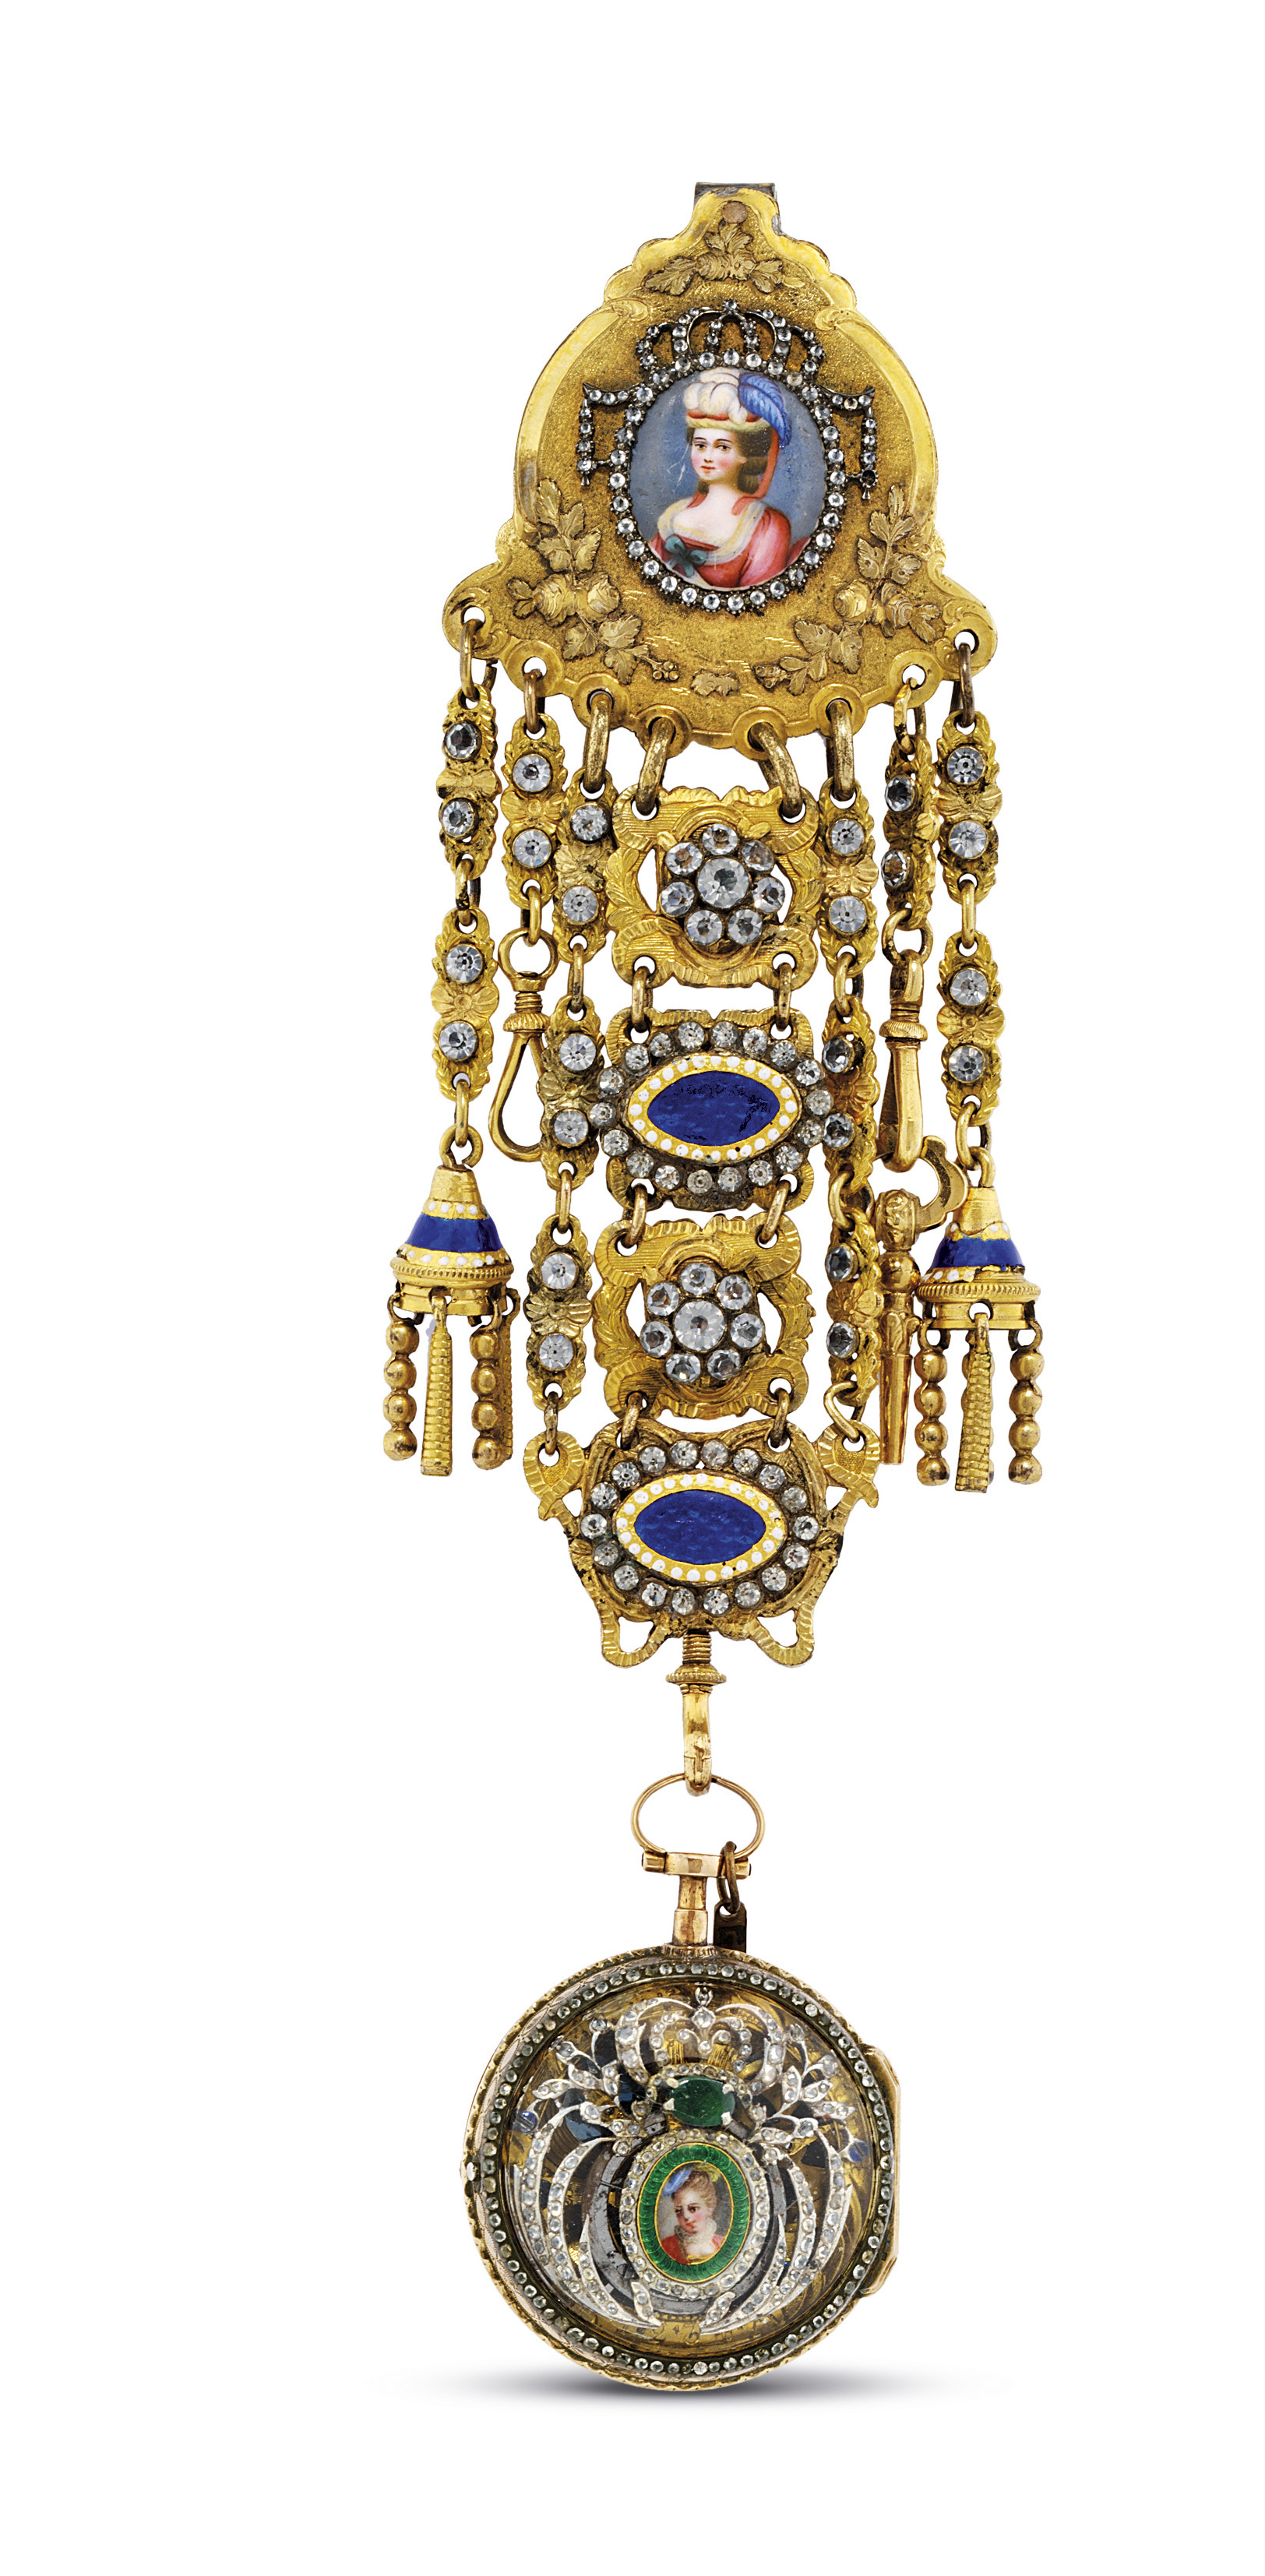 SWISS. A GOLD, ENAMEL AND PASTE-SET SKELETONIZED VERGE PENDANT WATCH WITH CORRESPONDING CHATELAINE AND KEY